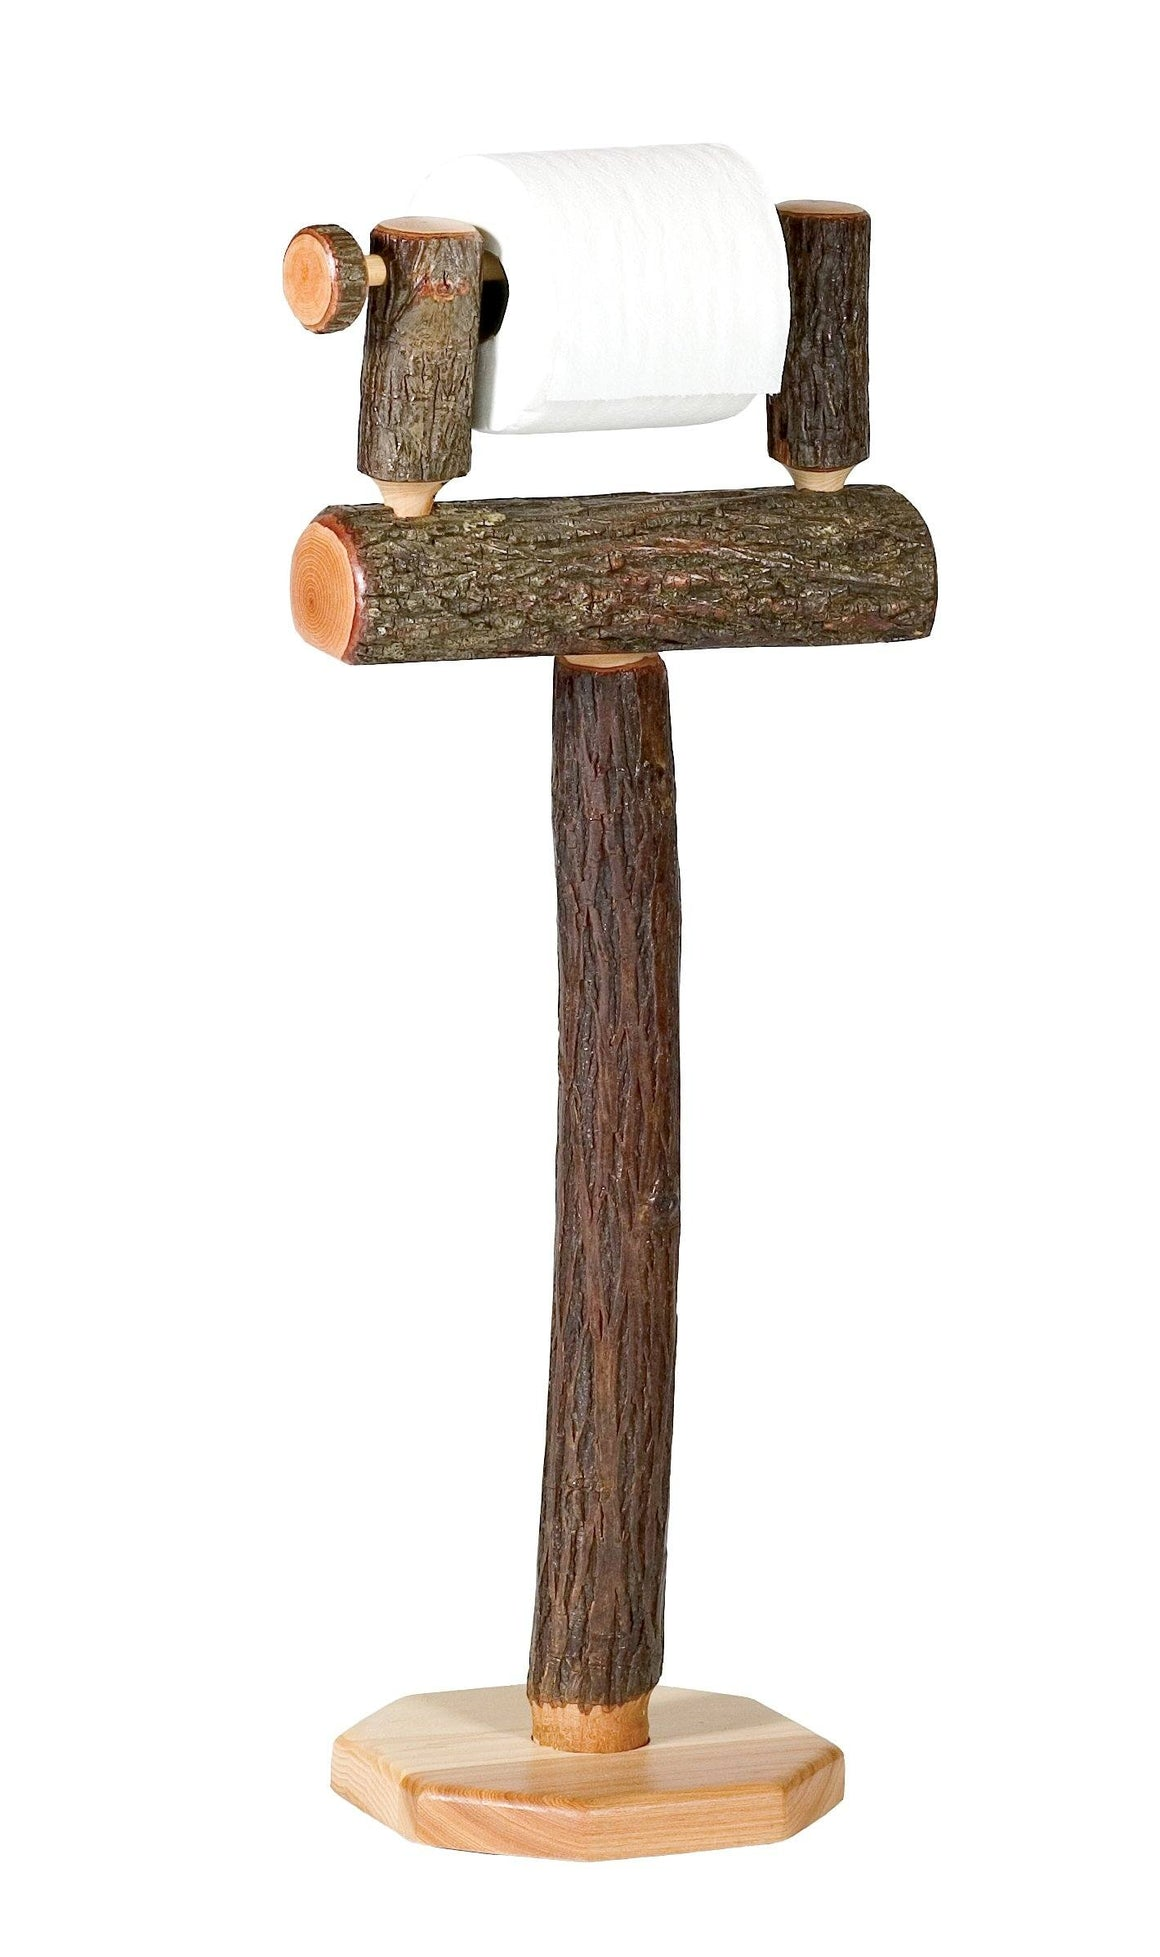 Natural Hickory Log Free Standing Toilet Paper Holder - Rustic Deco Incorporated